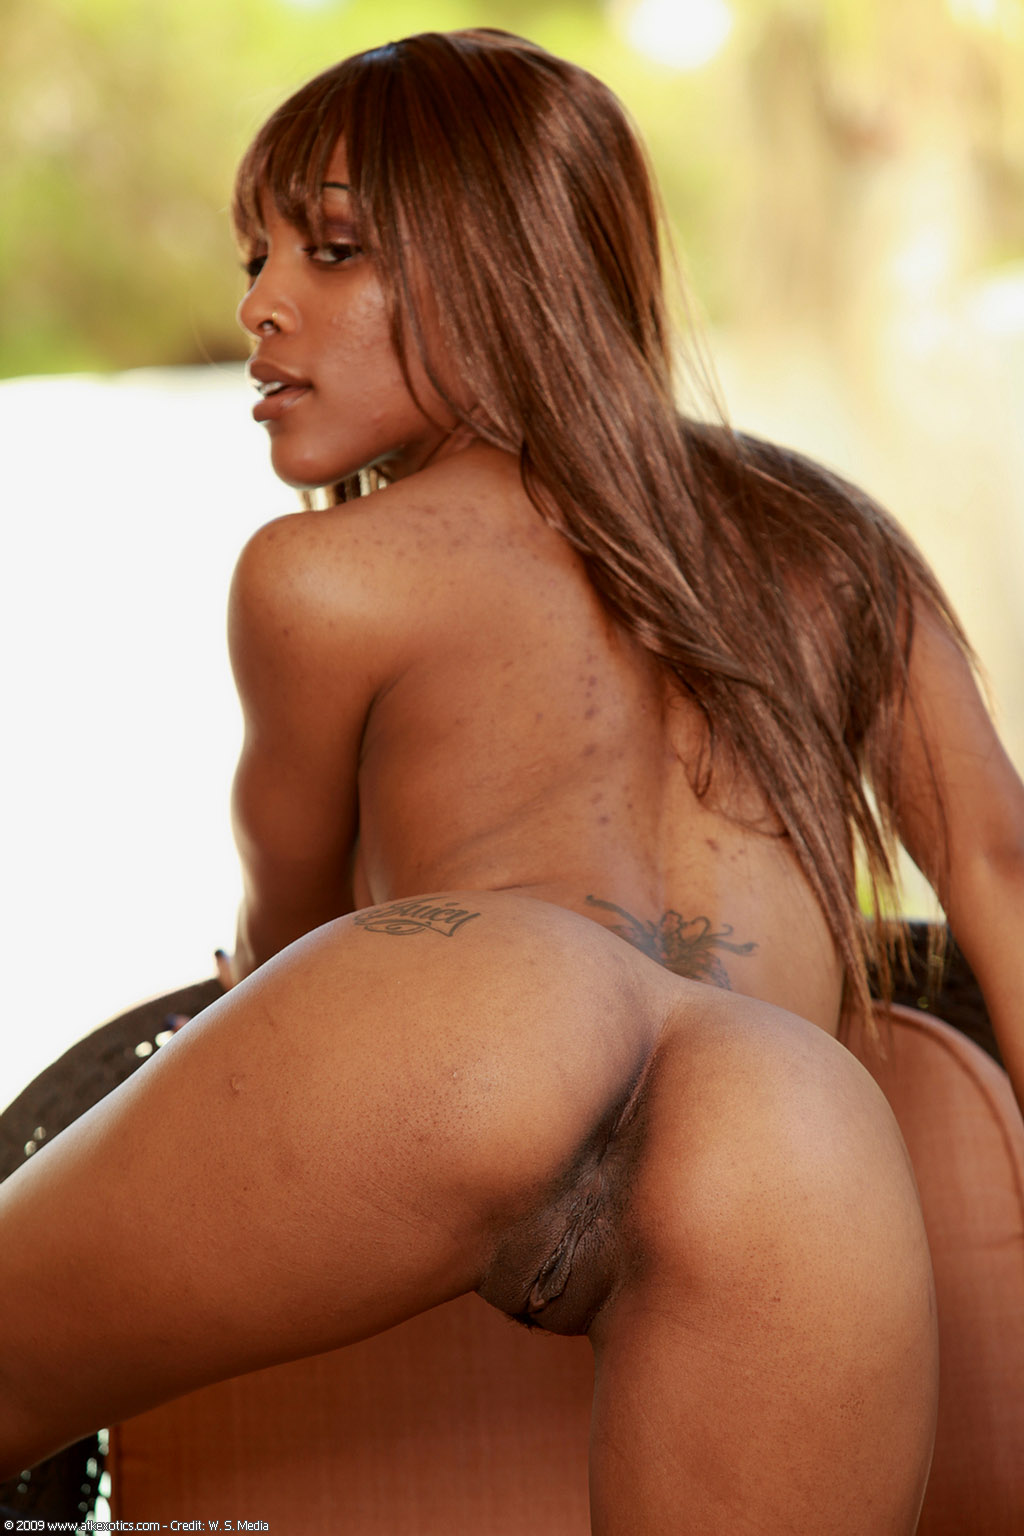 Have Black beautiful girls naked free think